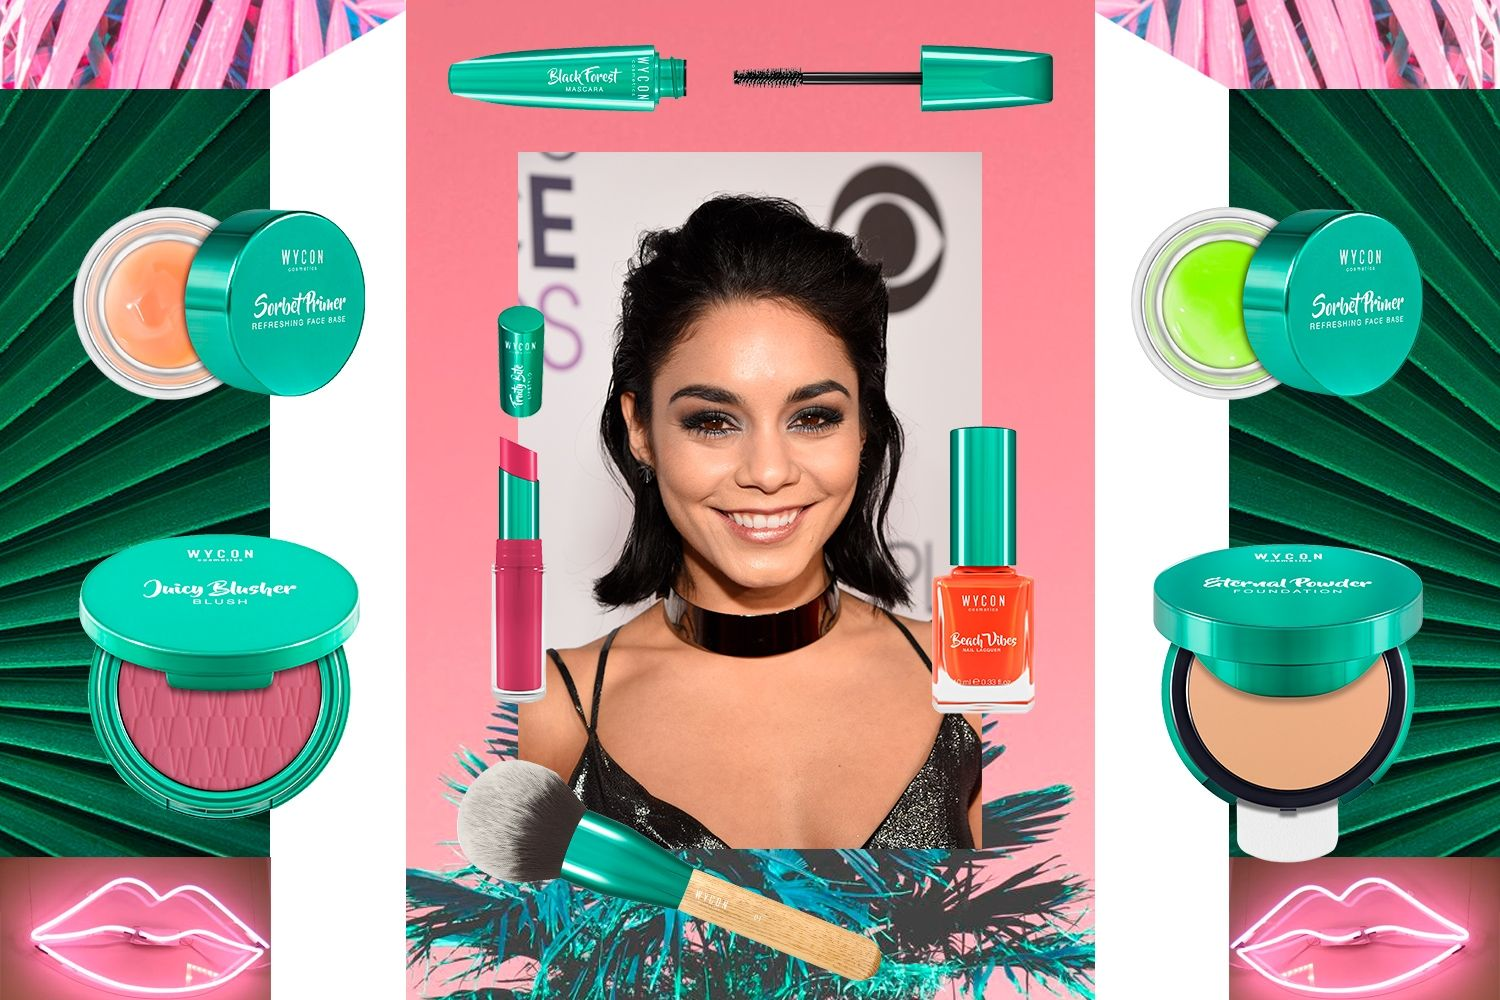 GET THE LOOK OF VANESSA HUDGENS Ottieni l'effetto Vanessa Hudgens con WYCON cosmetics in  pochi e semplici step